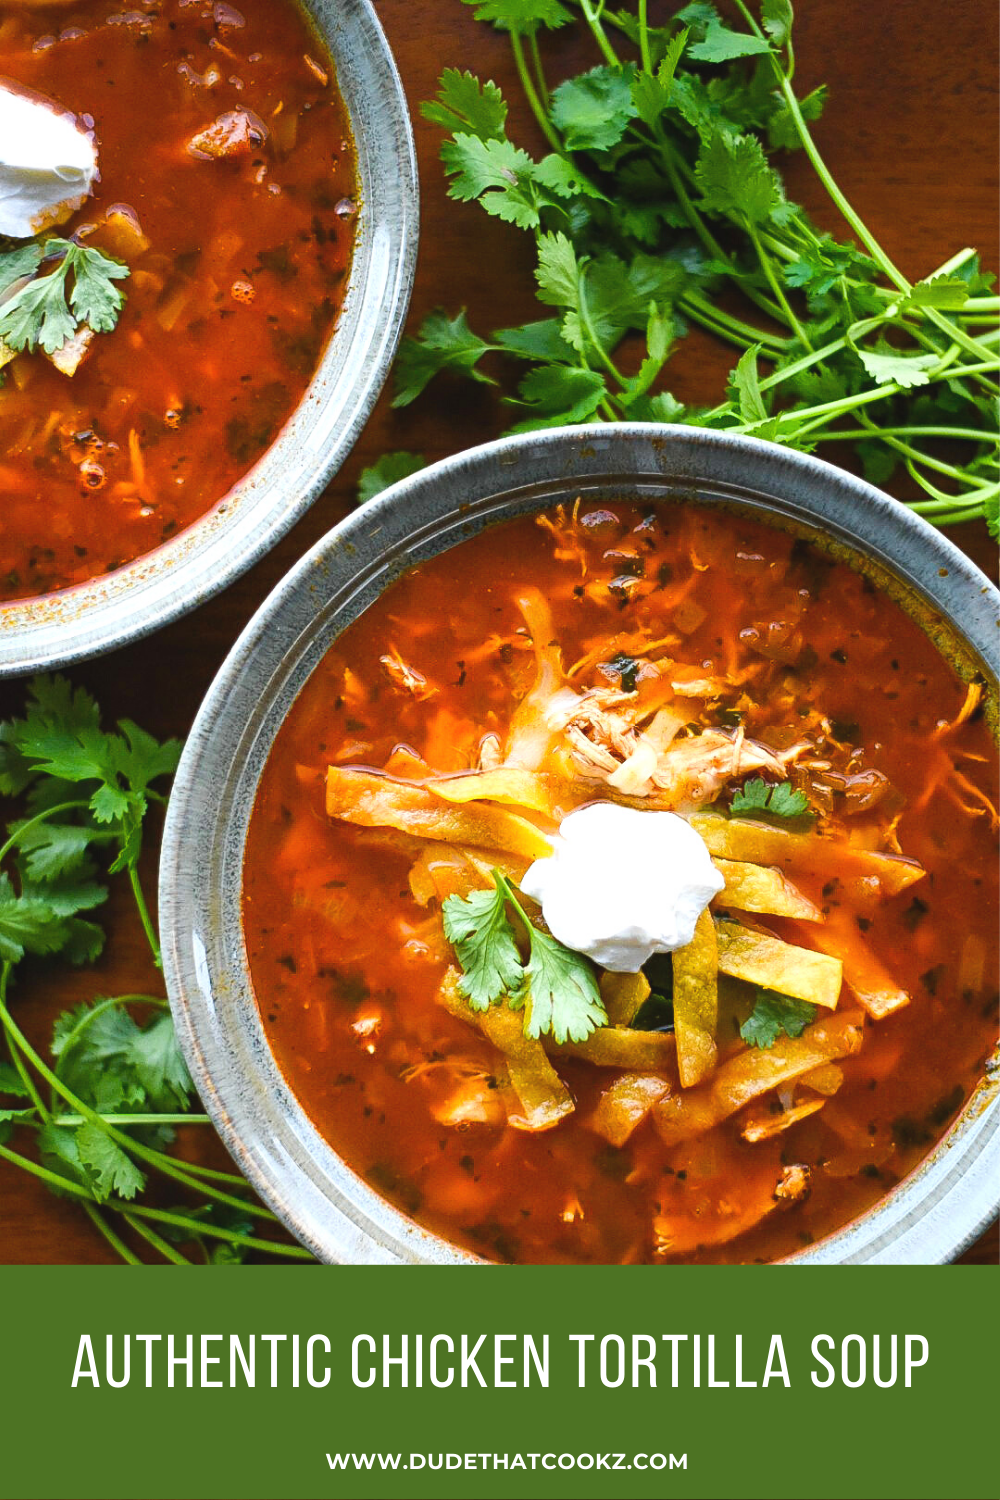 Authentic Chicken Tortilla Soup